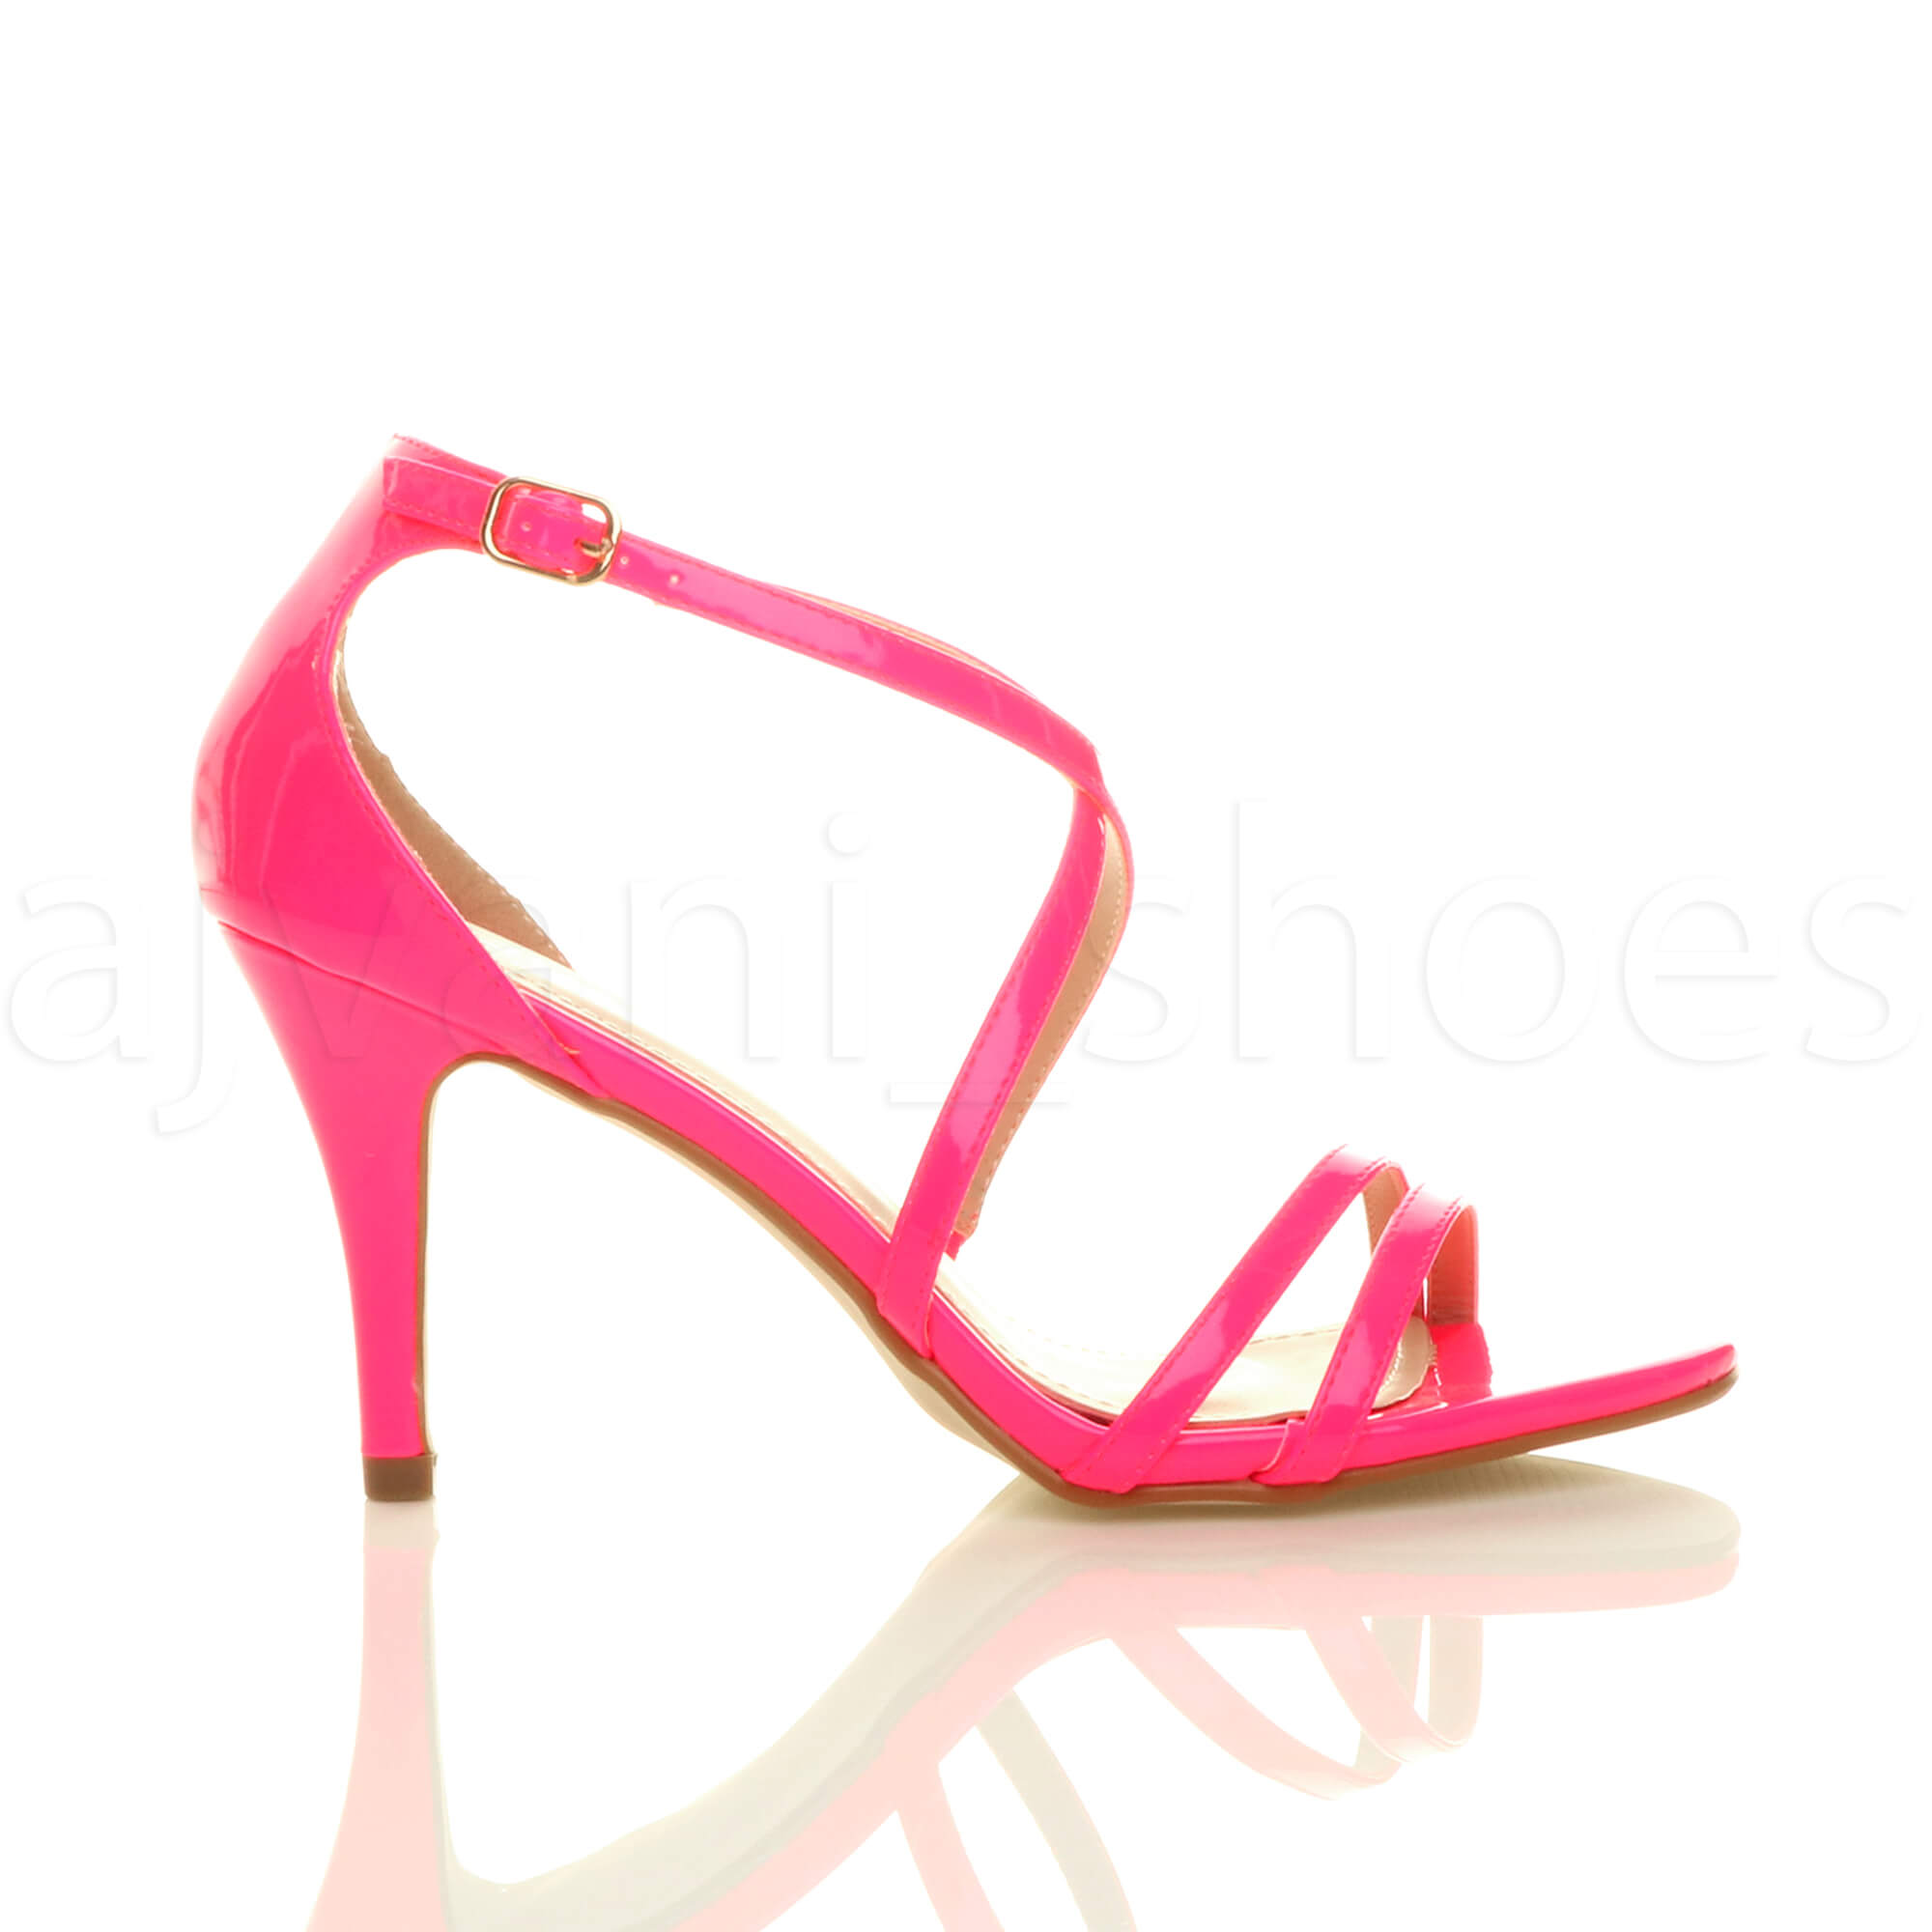 WOMENS-LADIES-MID-HIGH-HEEL-STRAPPY-CROSSOVER-WEDDING-PROM-SANDALS-SHOES-SIZE thumbnail 94